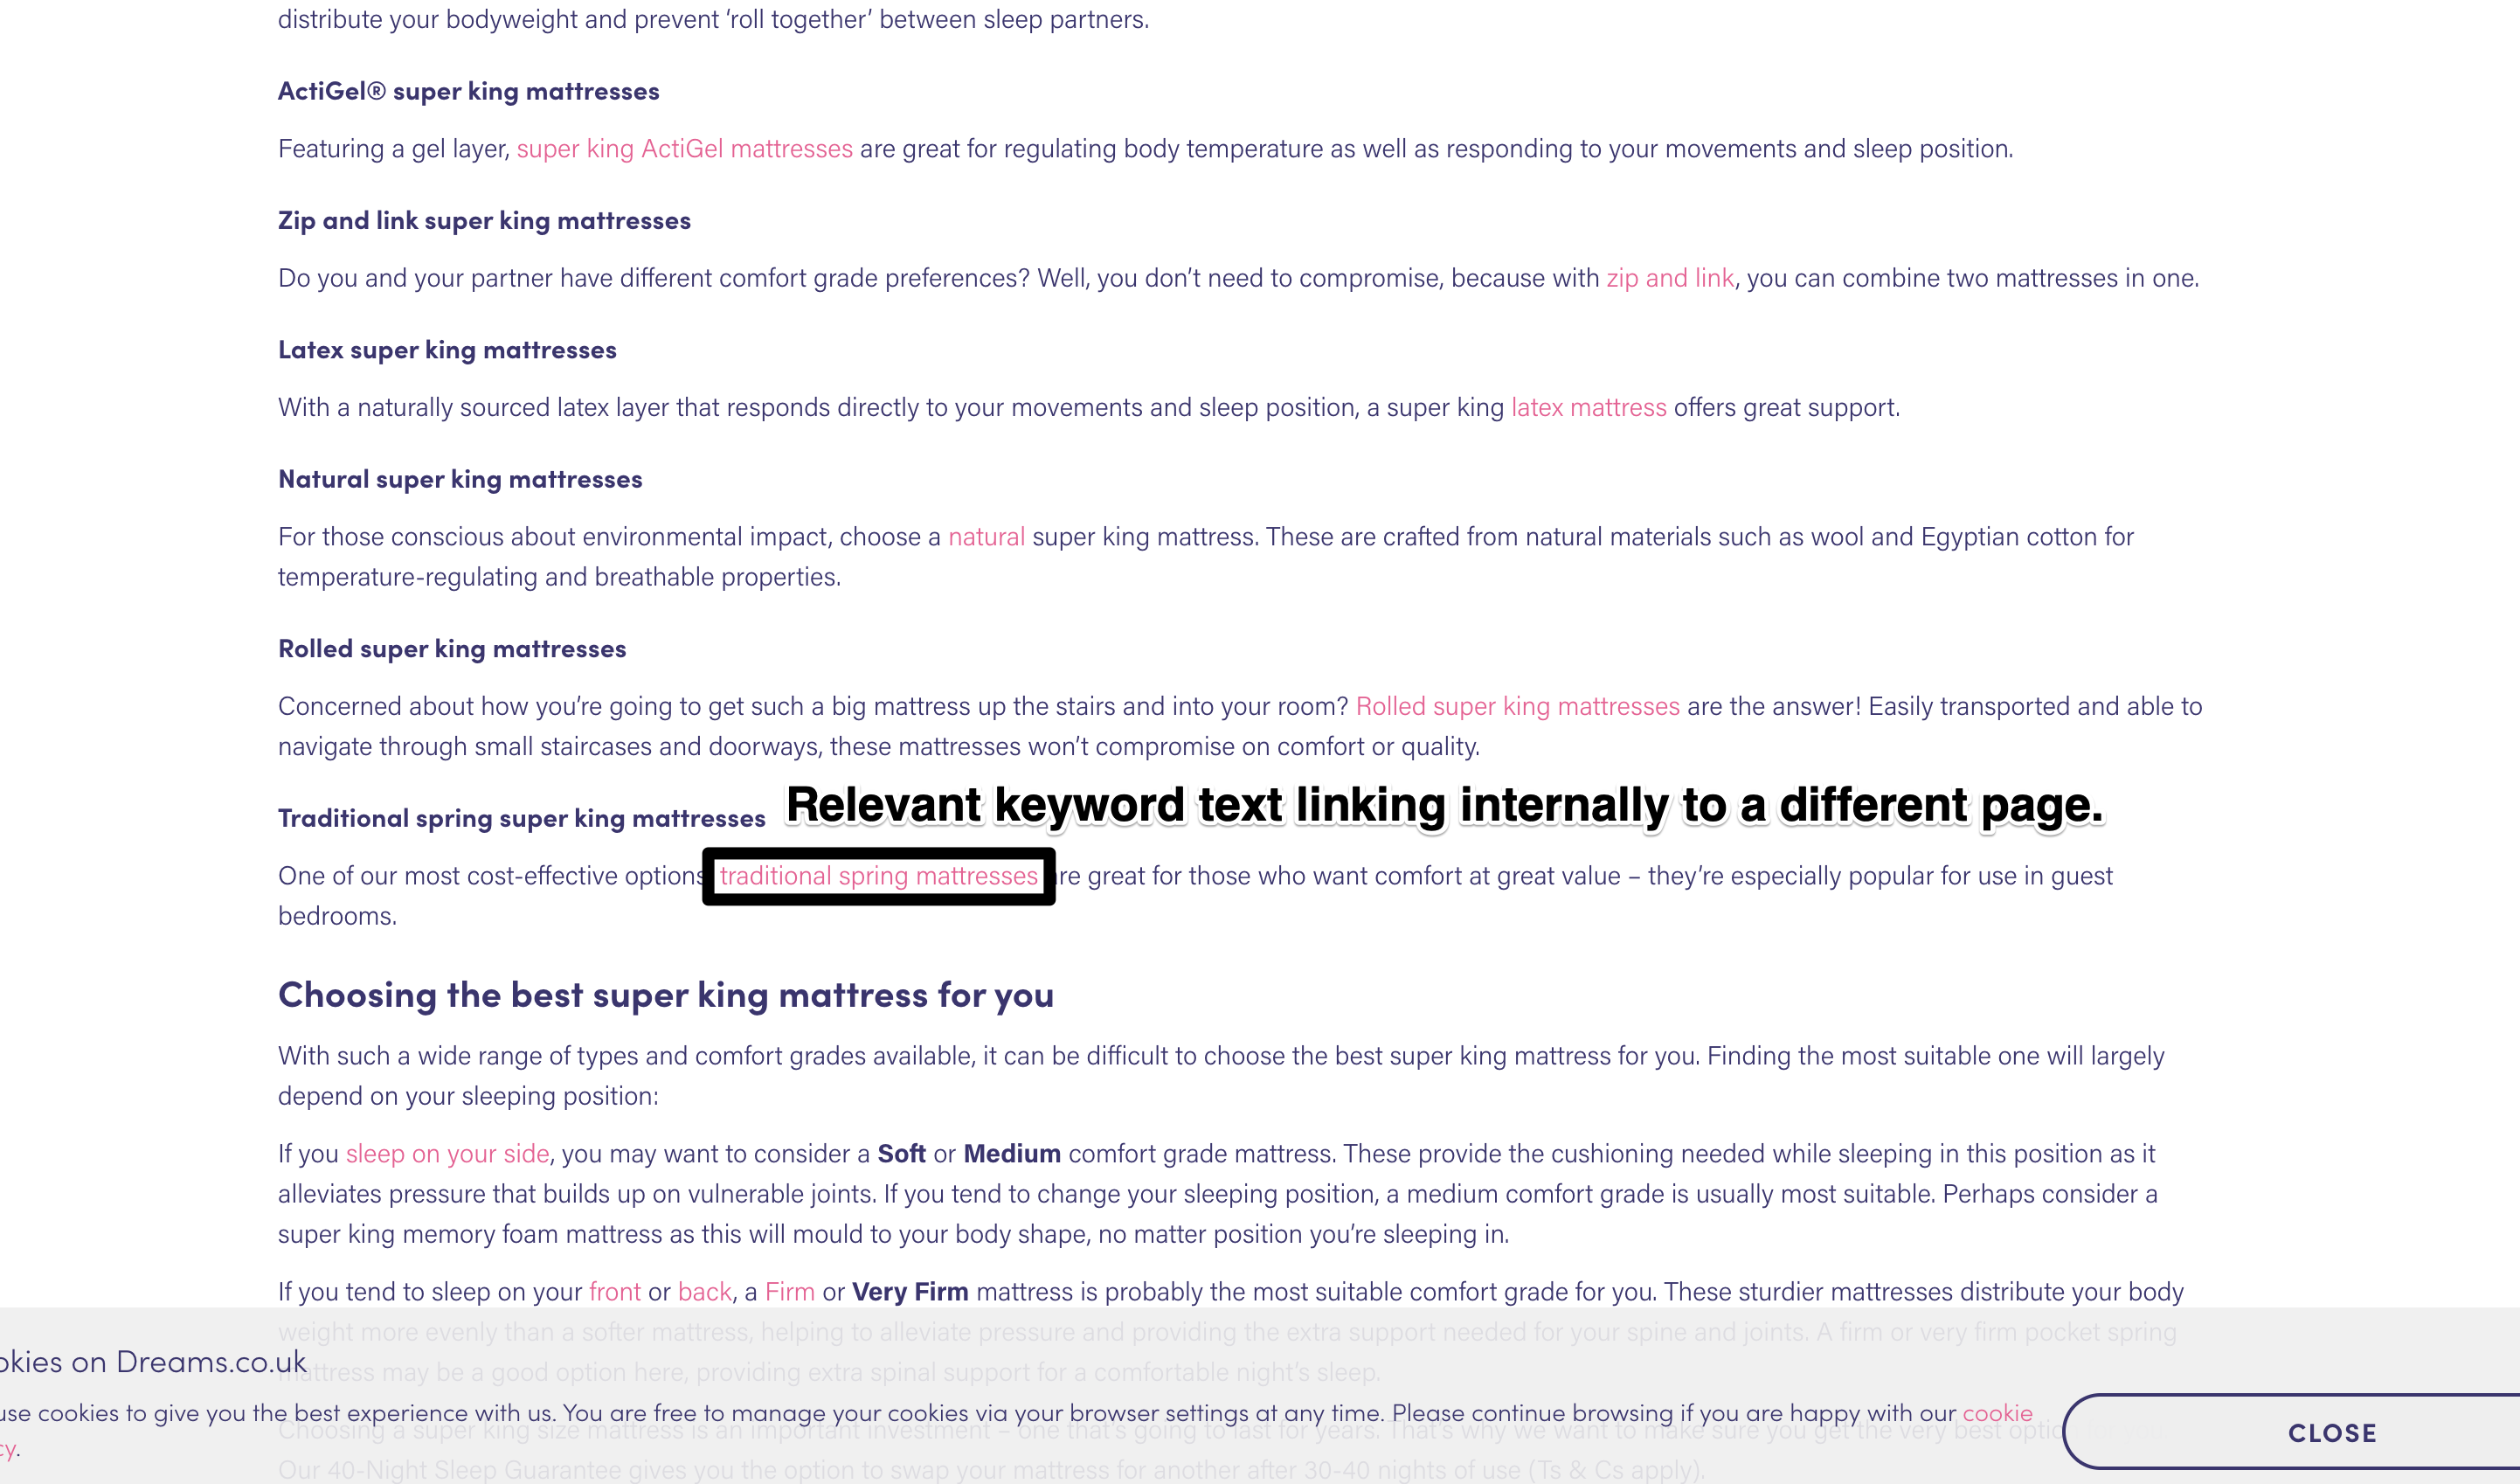 image showing relevant anchor text within an internal link on a web page